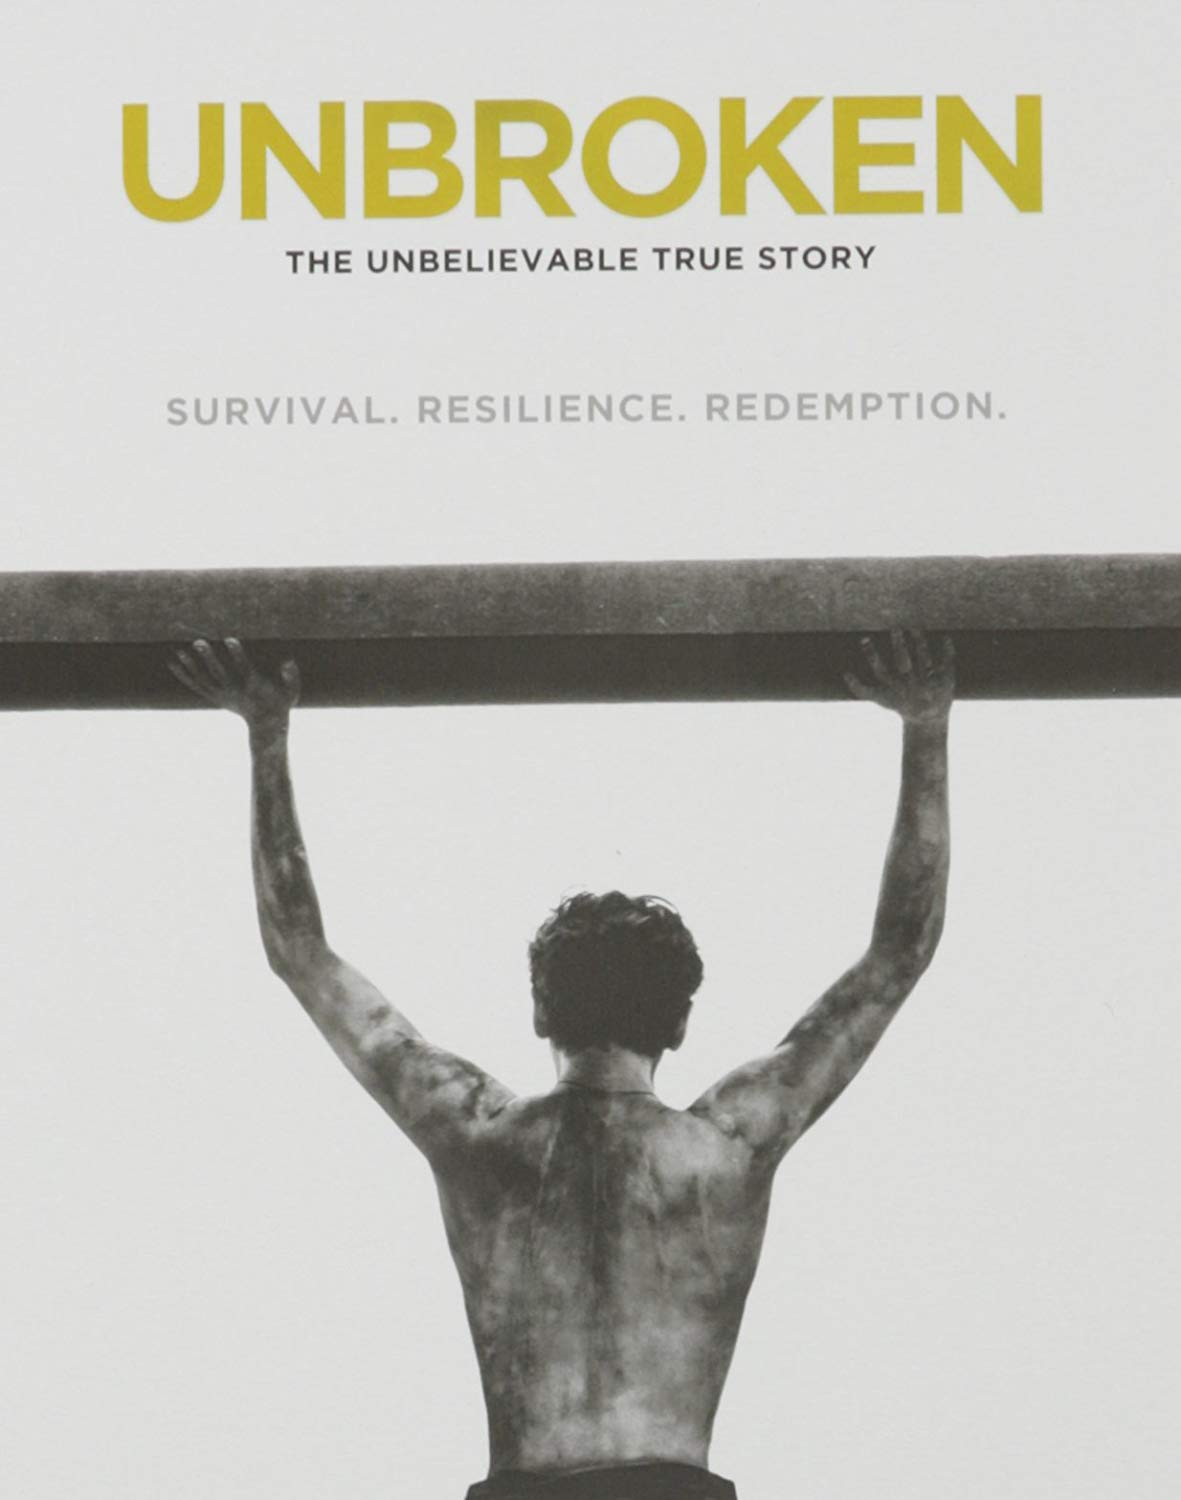 Unbroken [Movie] - Unbroken [Steelbook]